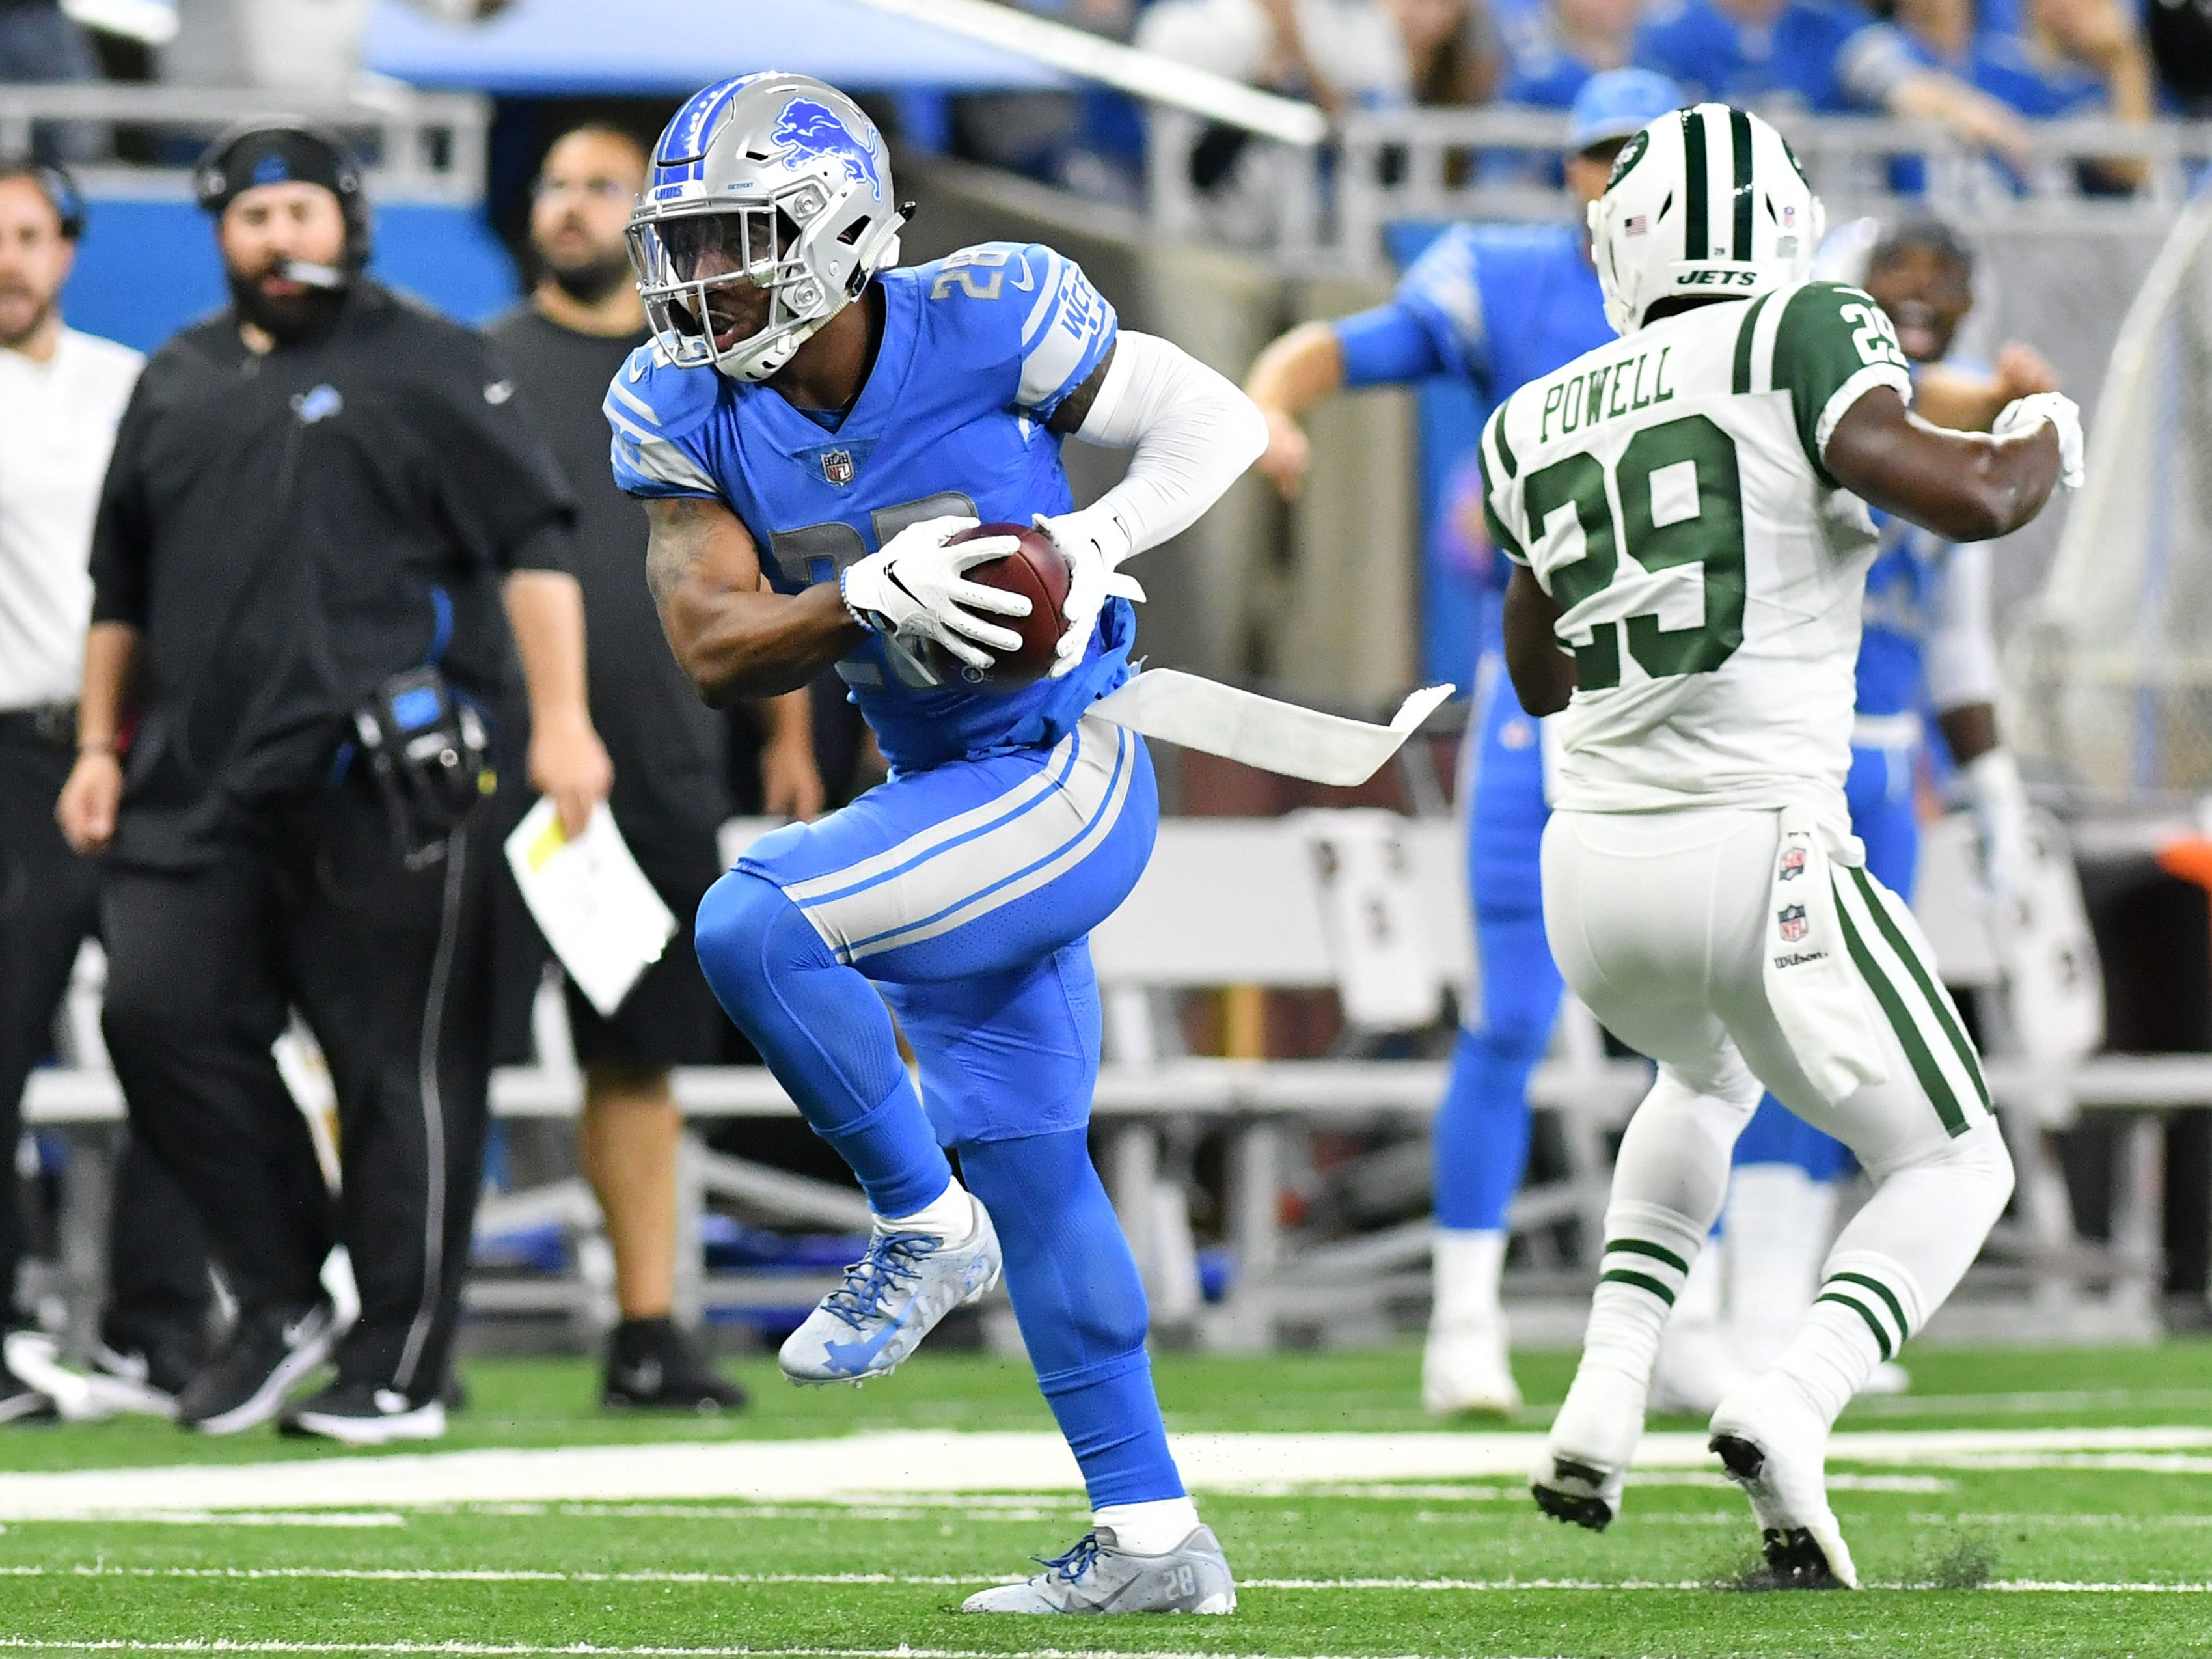 Lions' Quandre Diggs snatches a pass intended for Jets' Bilal Powell and returns it for a touchdown in the first quarter.